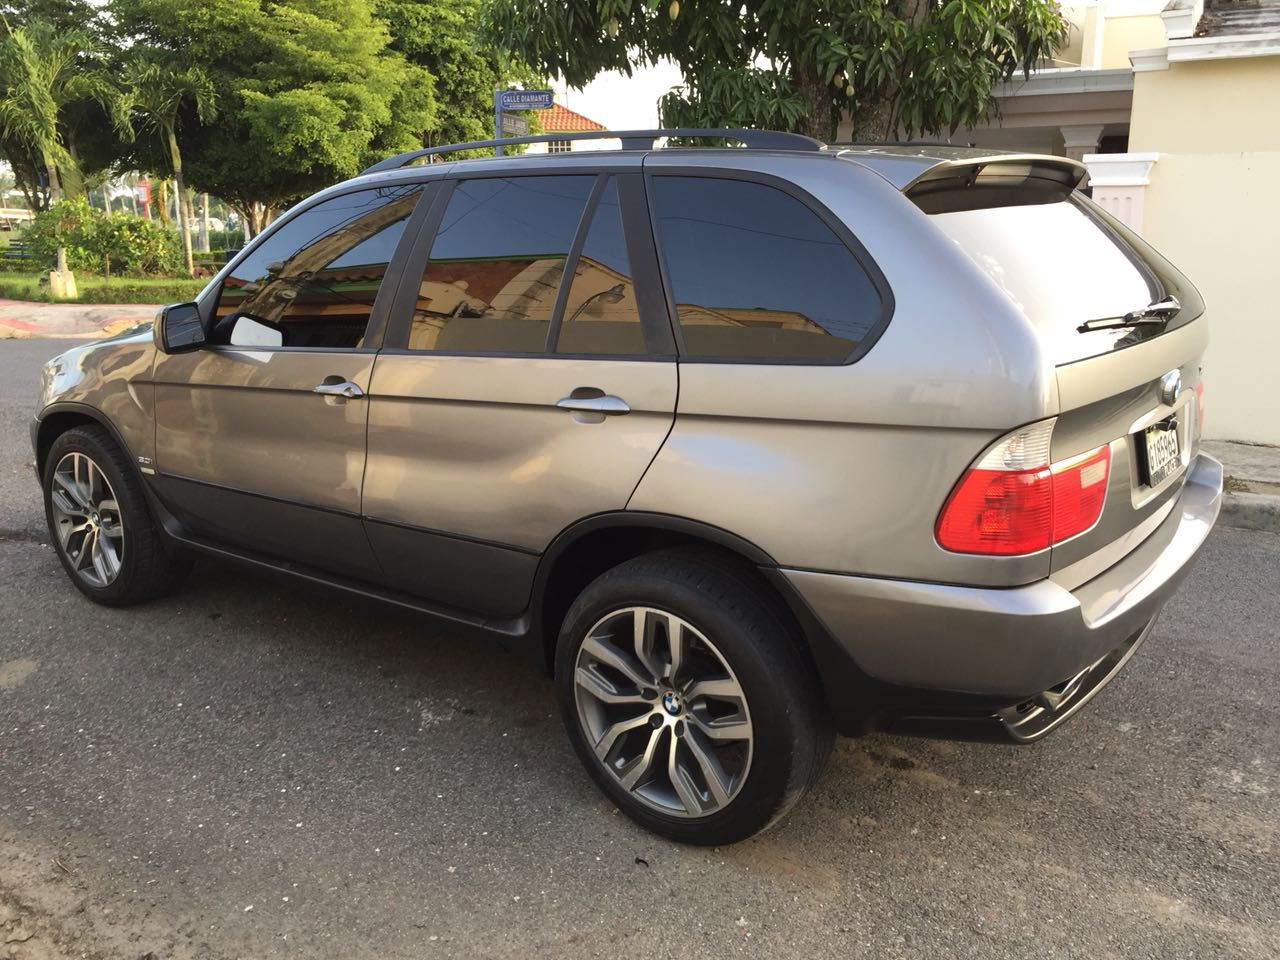 bmw x5 2004 gasolina limited 4x4 en san francisco la pulga virtual. Black Bedroom Furniture Sets. Home Design Ideas